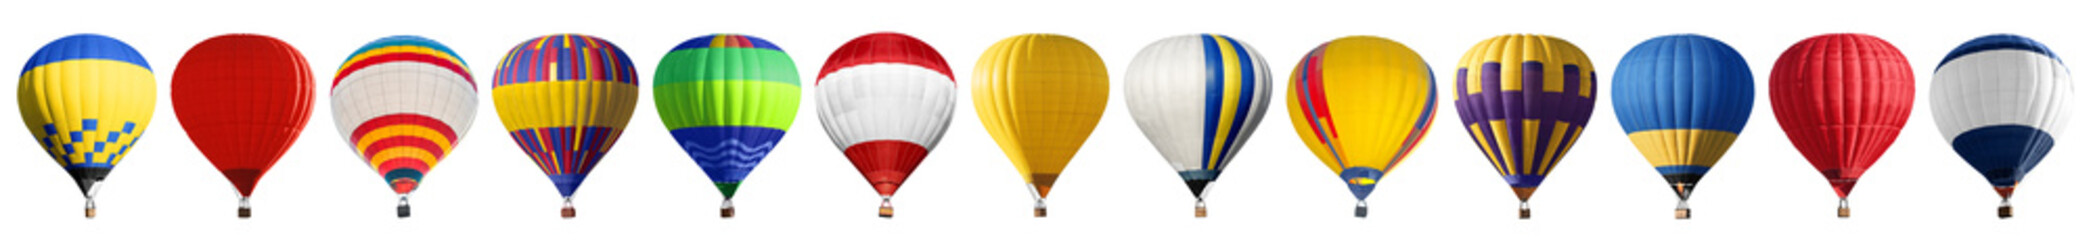 Papiers peints Montgolfière / Dirigeable Set of bright colorful hot air balloons on white background